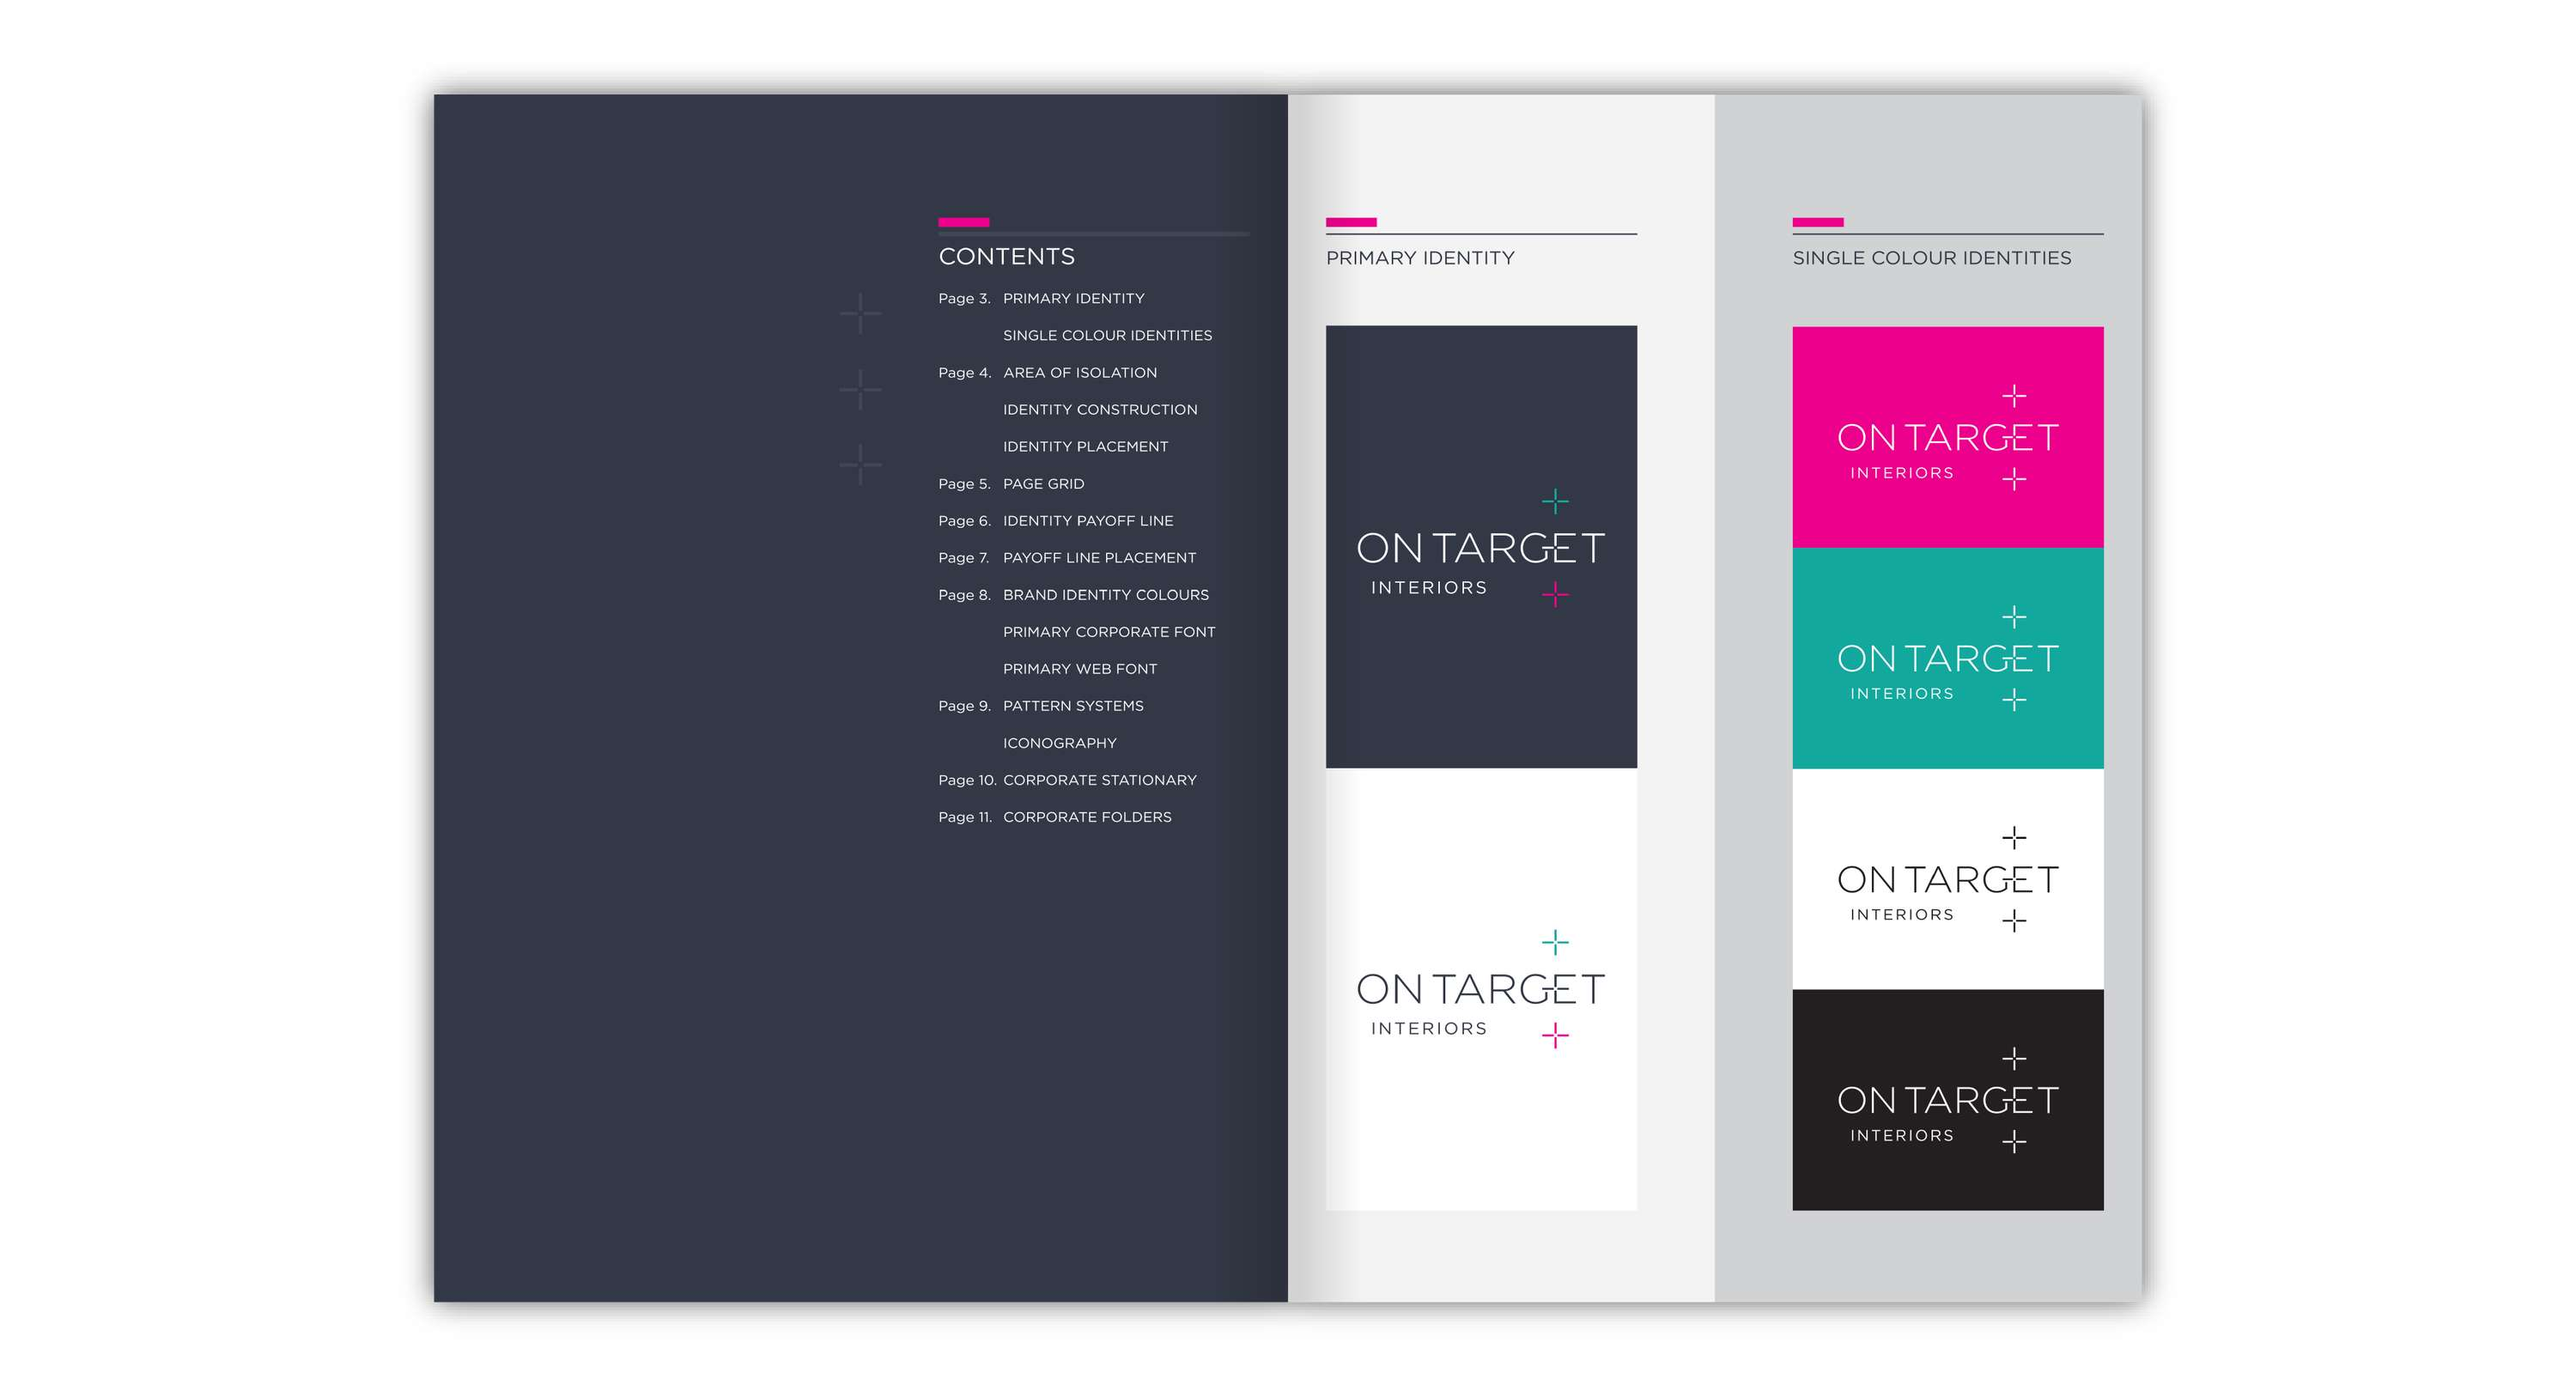 Ontarget Interiors Identity | The Dots